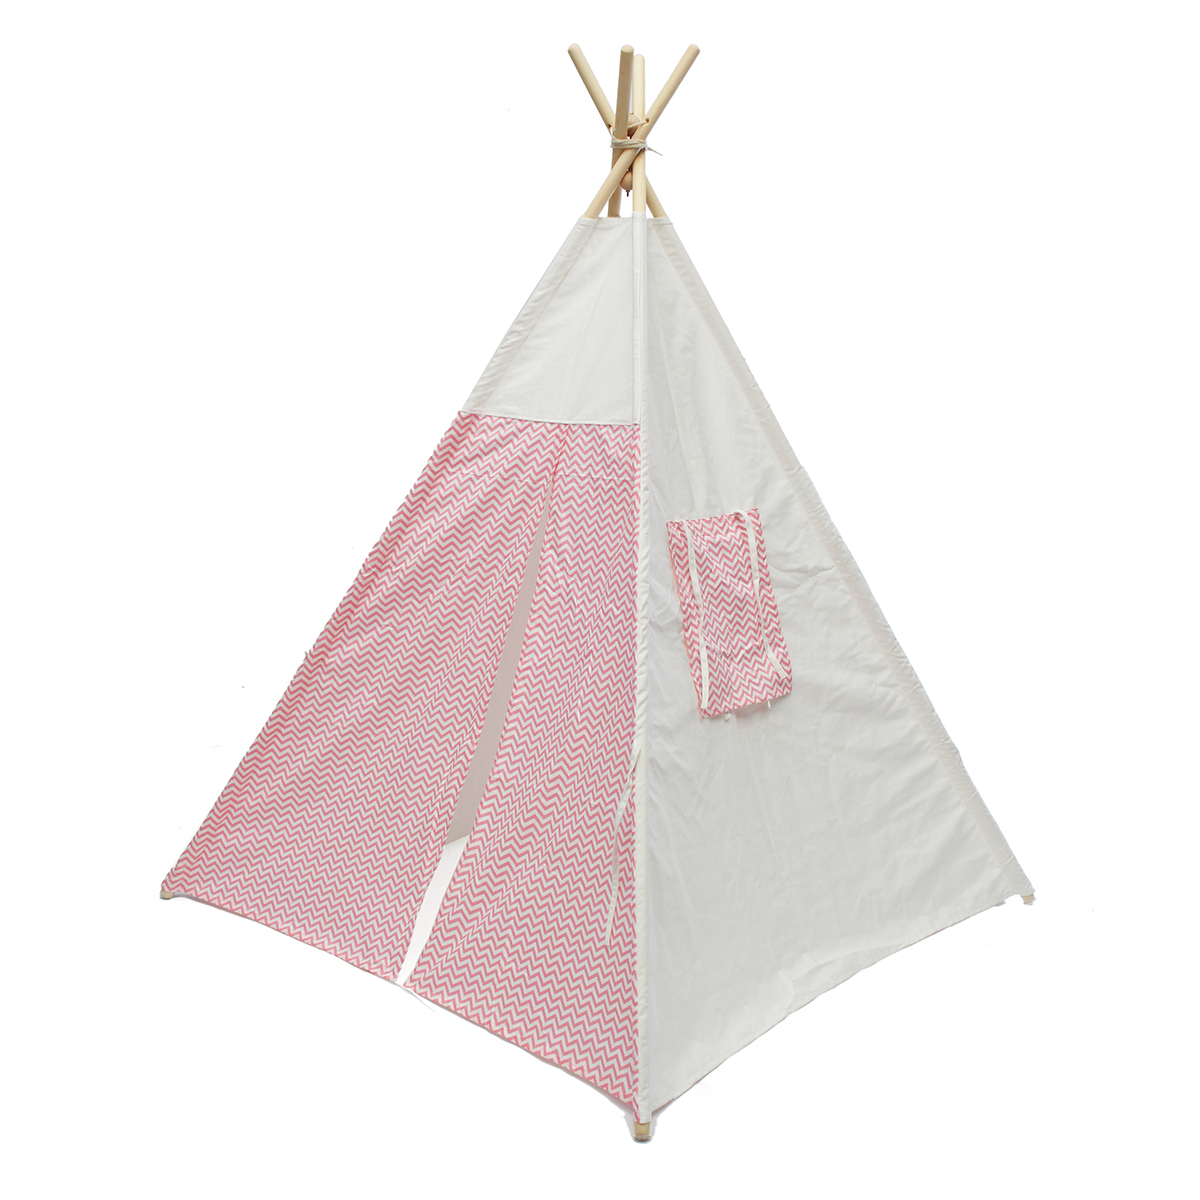 Indoor Children Kids Play Tent Teepee Playhouse Sleeping Dome Toys Castle Cubby